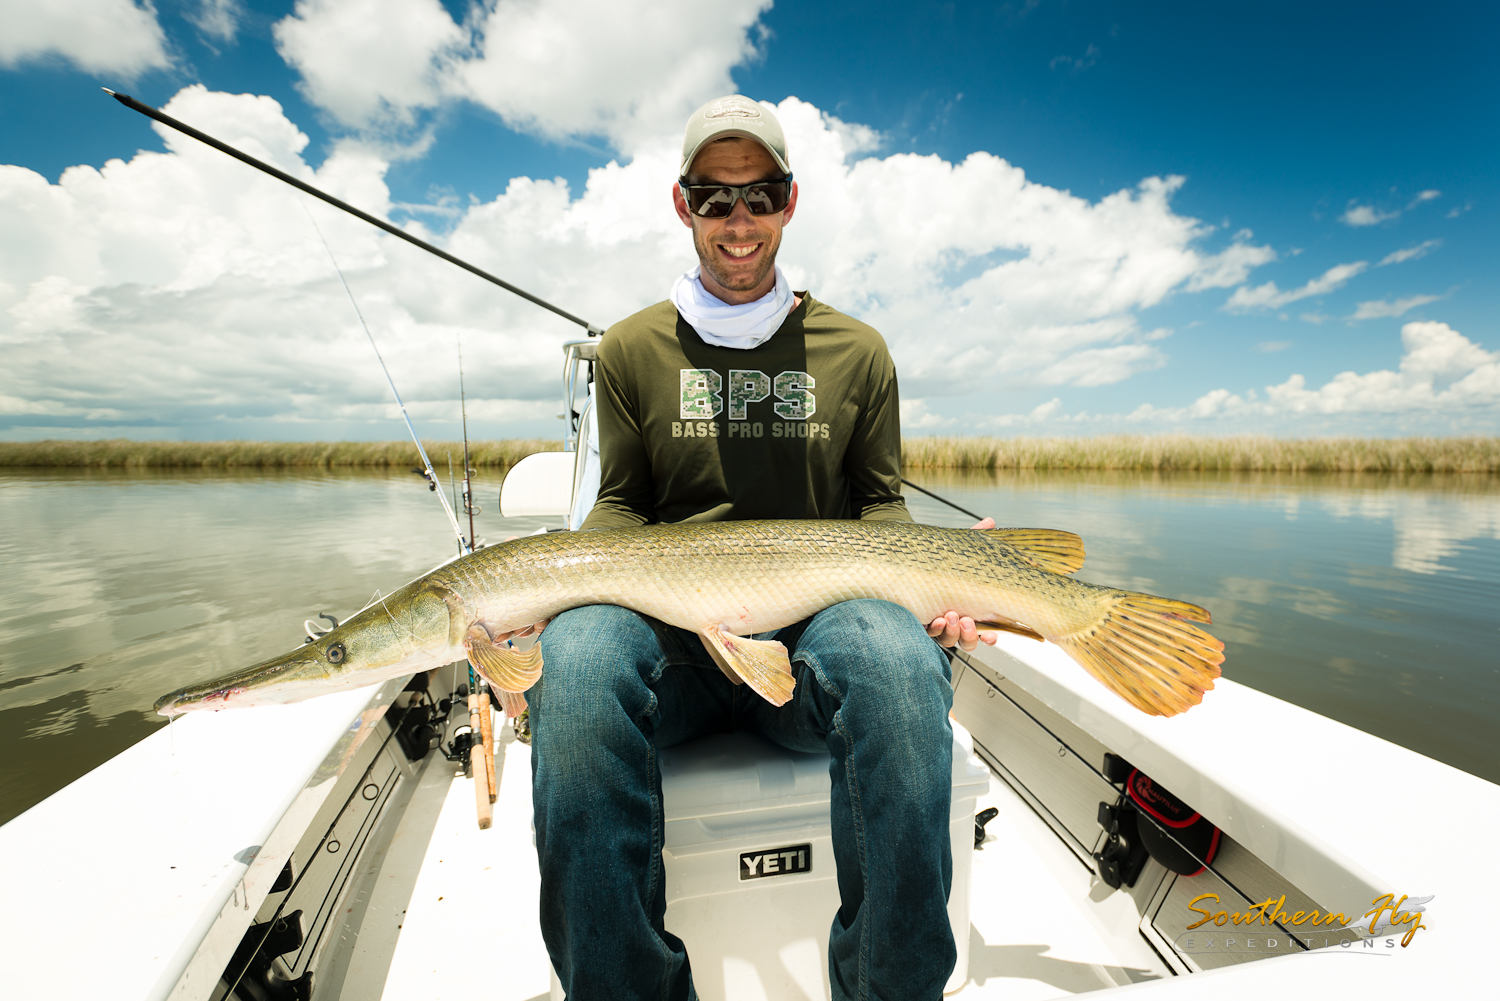 fly fishing new orleans and fly fishing louisiana - Southern Fly Expeditions the best redfish guide in Louisiana